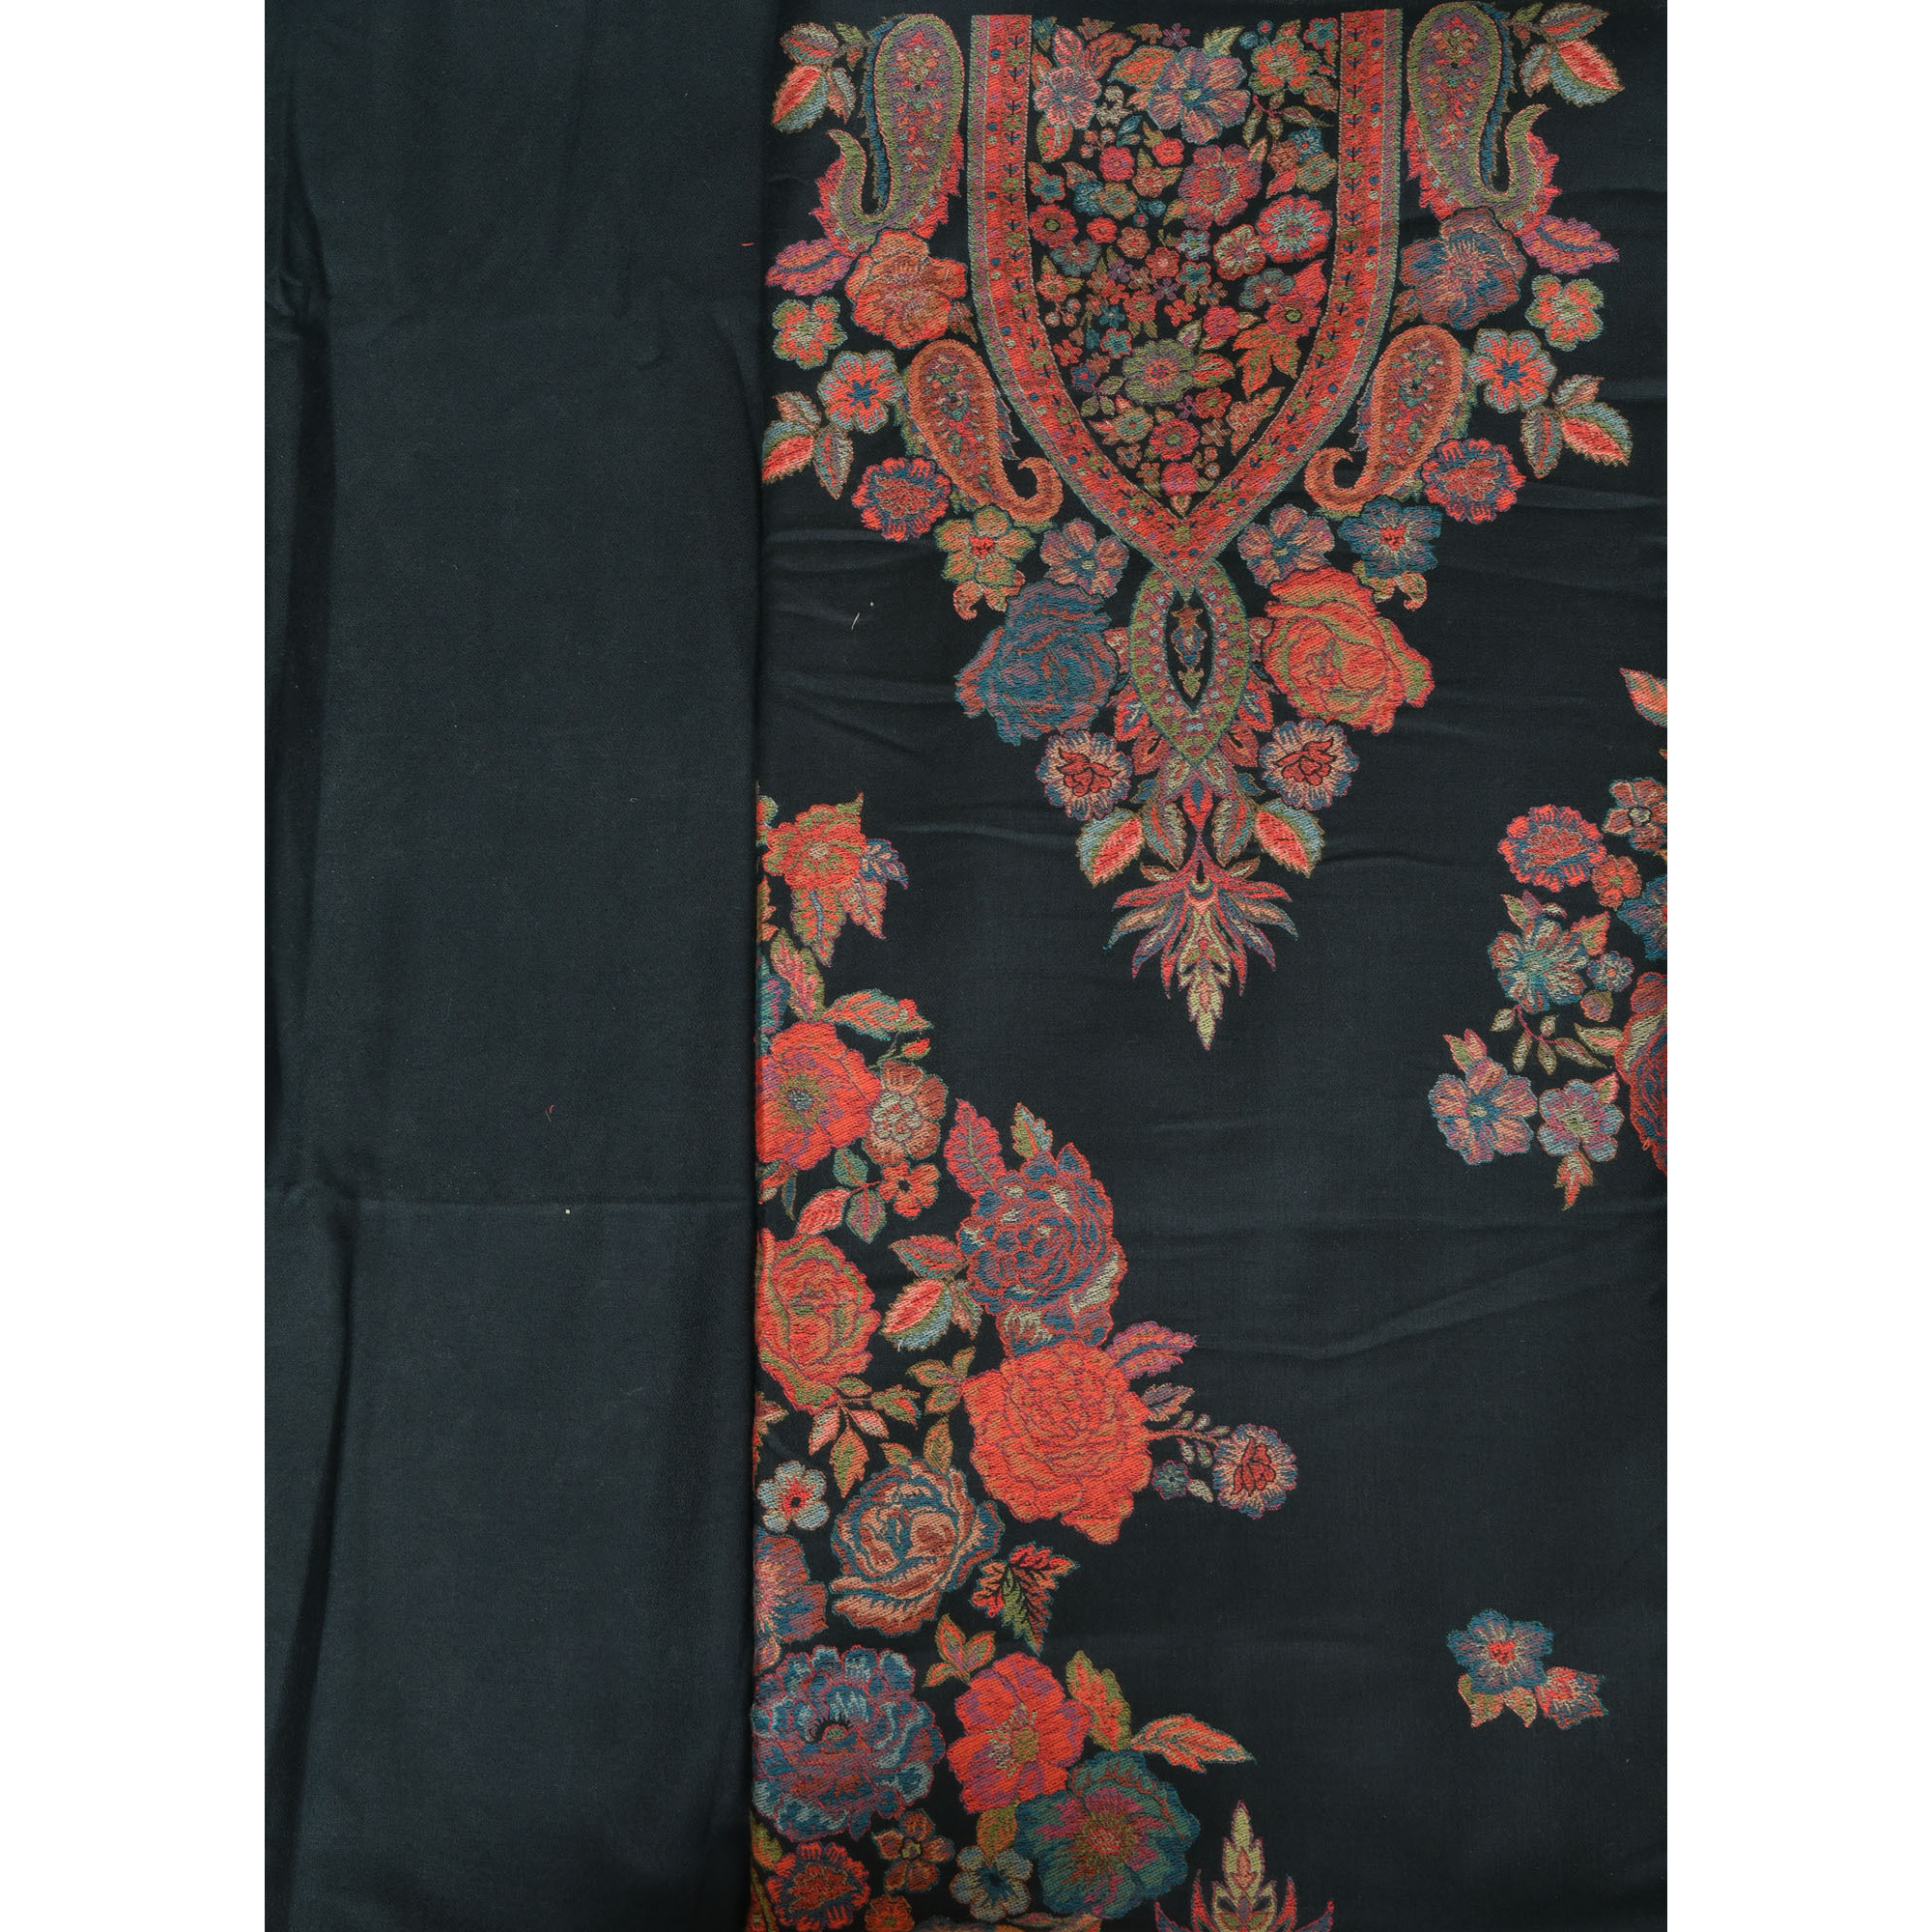 Jet-Black Kani Jamawar Salwar Kameez Fabric with Woven Flowers